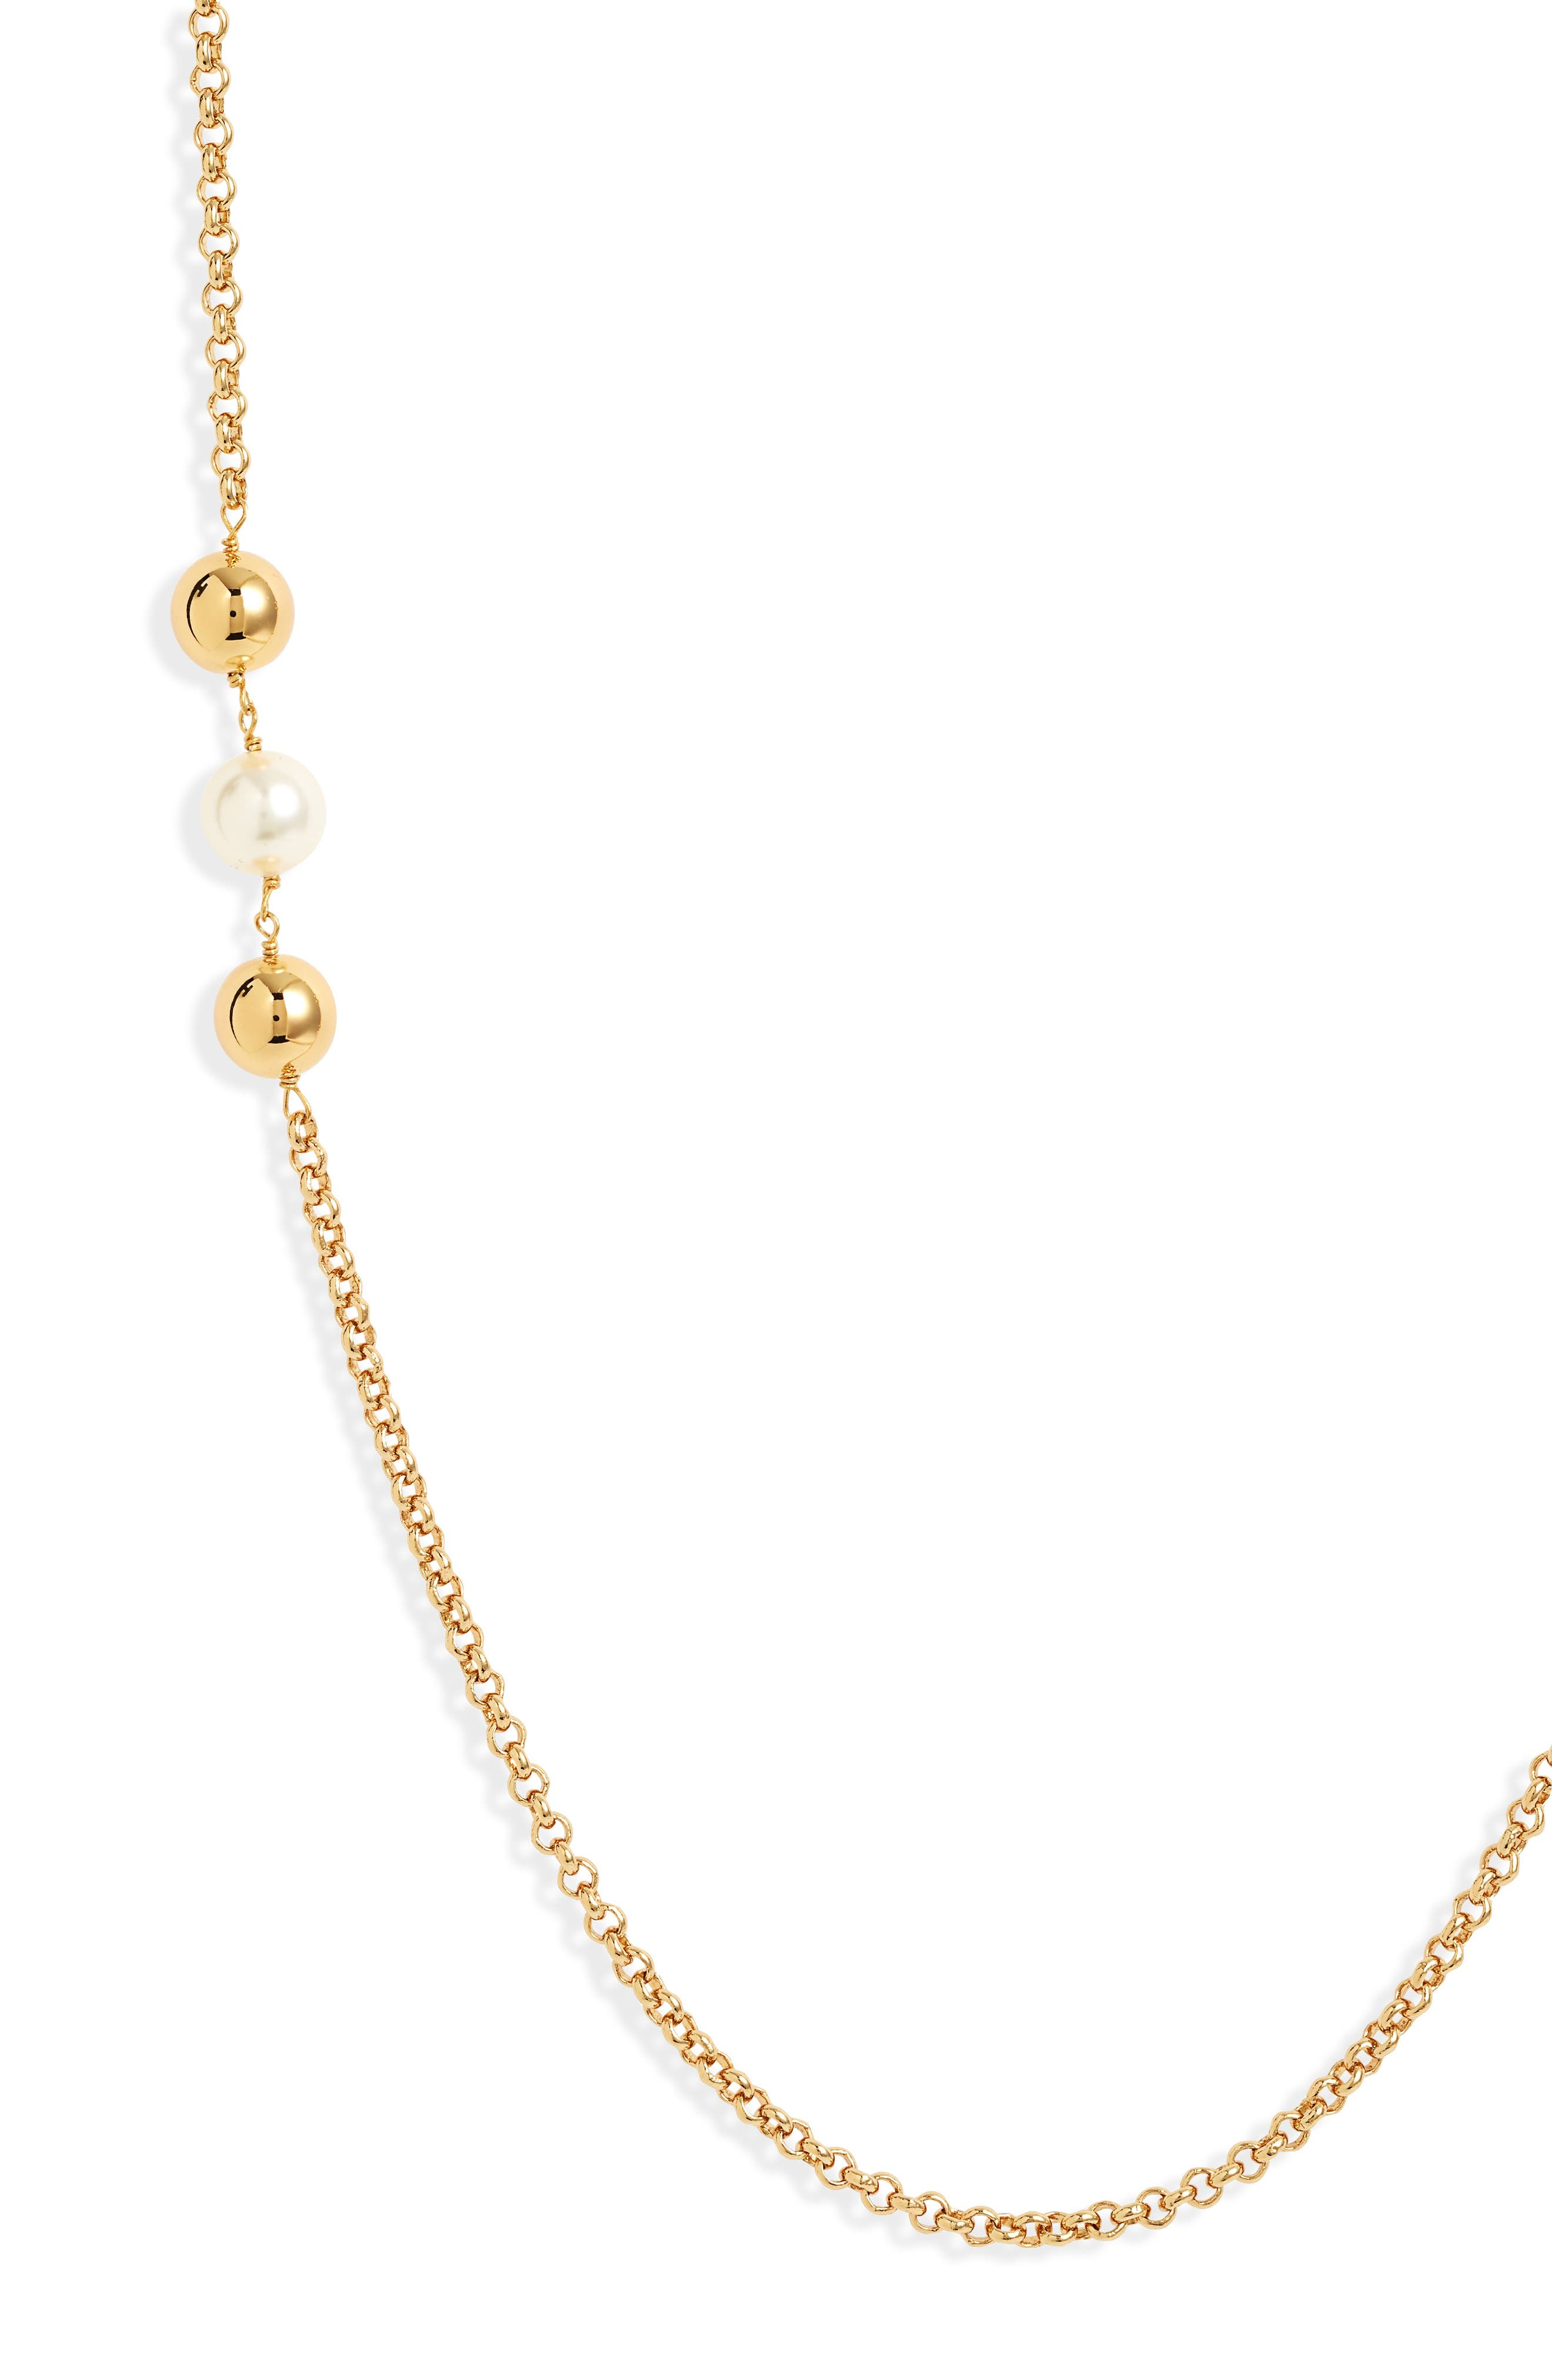 TORY BURCH CAPPED CRYSTAL PEARL CHAIN ROSARY IN METALLIC COATED BRASS - JEWELRY US, IVORY